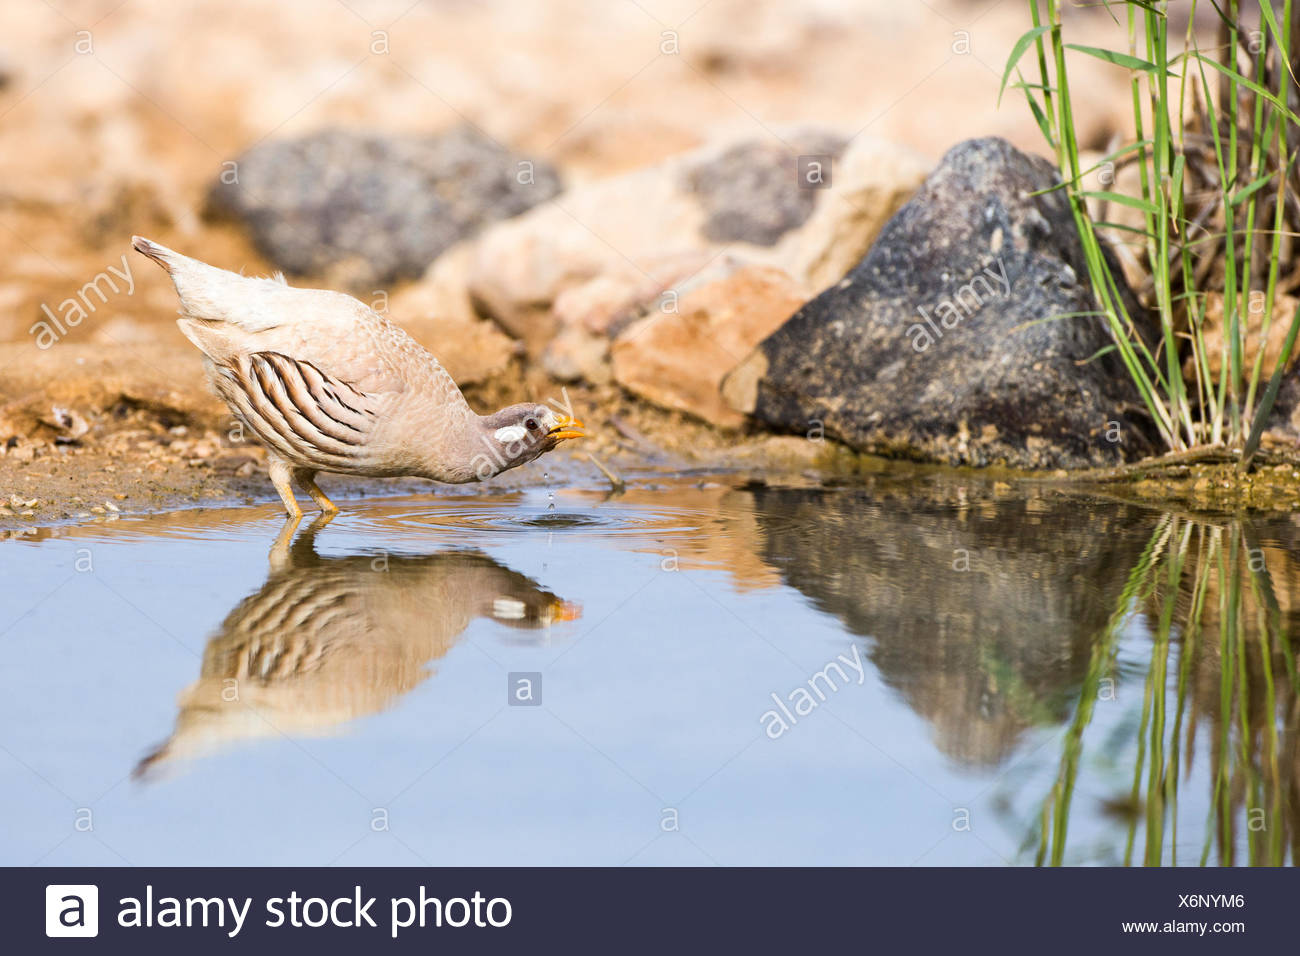 sand partridge (Ammoperdix heyi) is a gamebird in the pheasant family Phasianidae of the order Galliformes, gallinaceous birds. - Stock Image